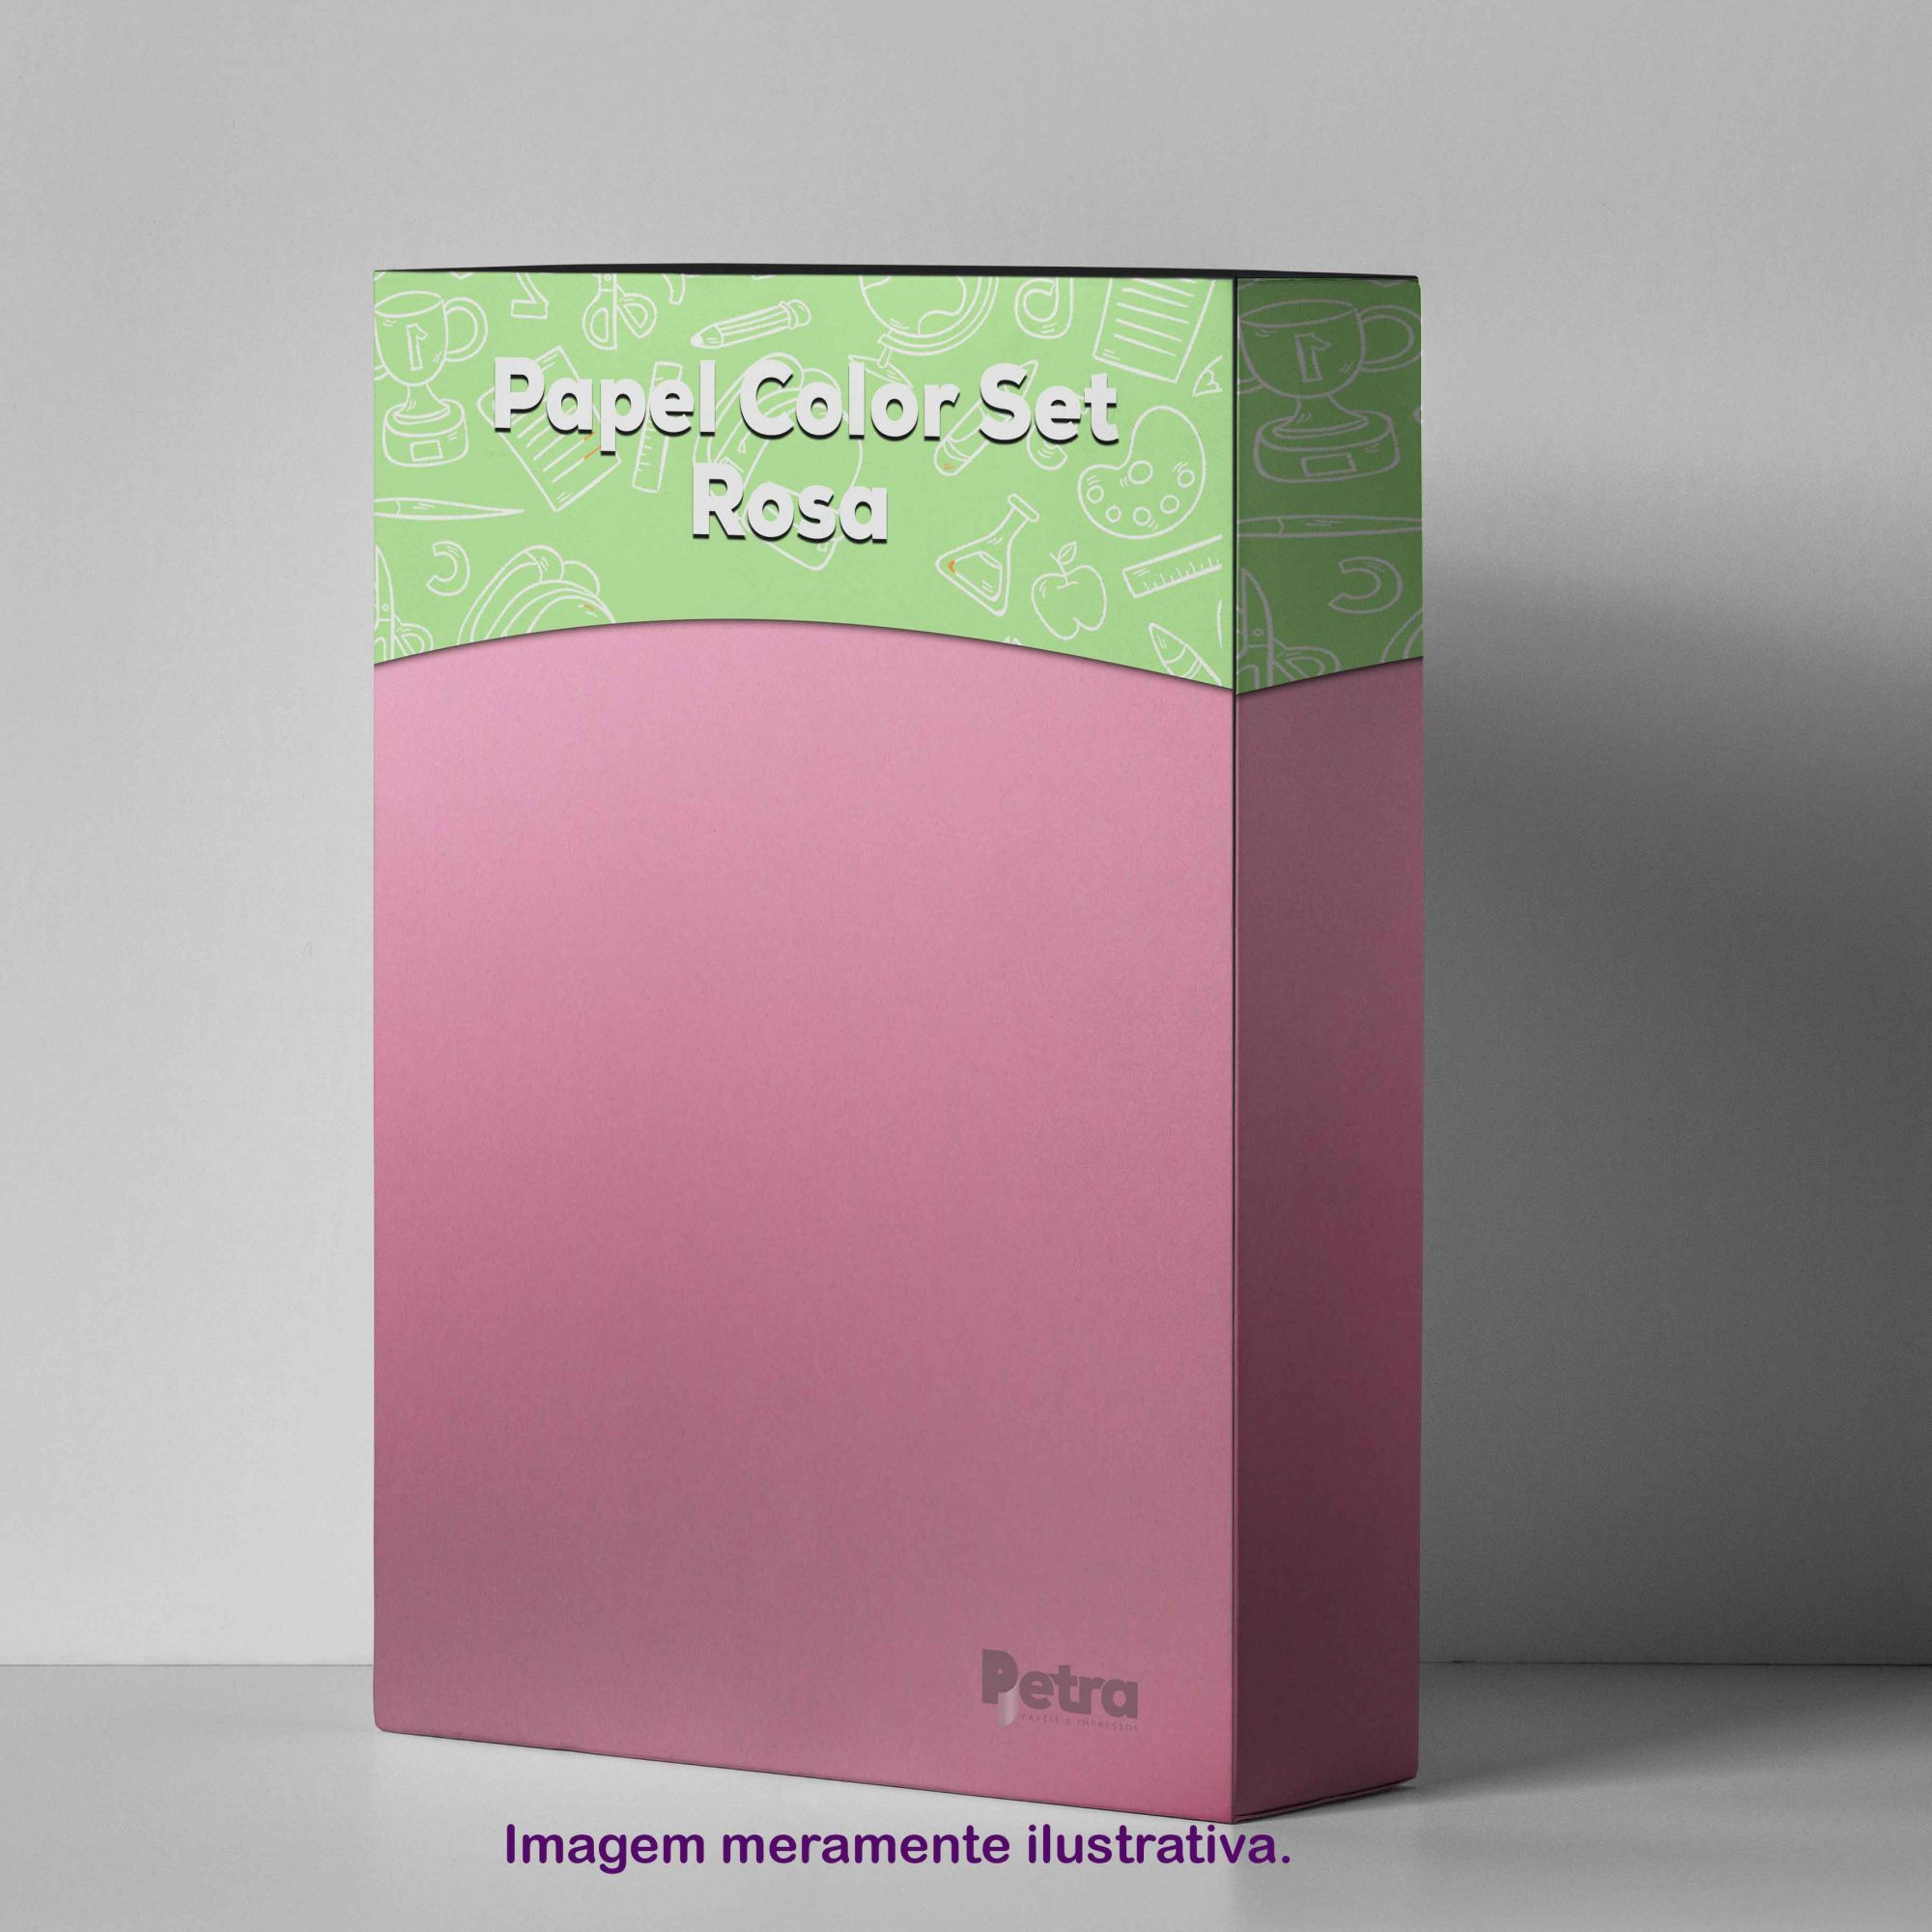 Papel Color Set Rosa Tam. A4 180g/m² - 50 folhas